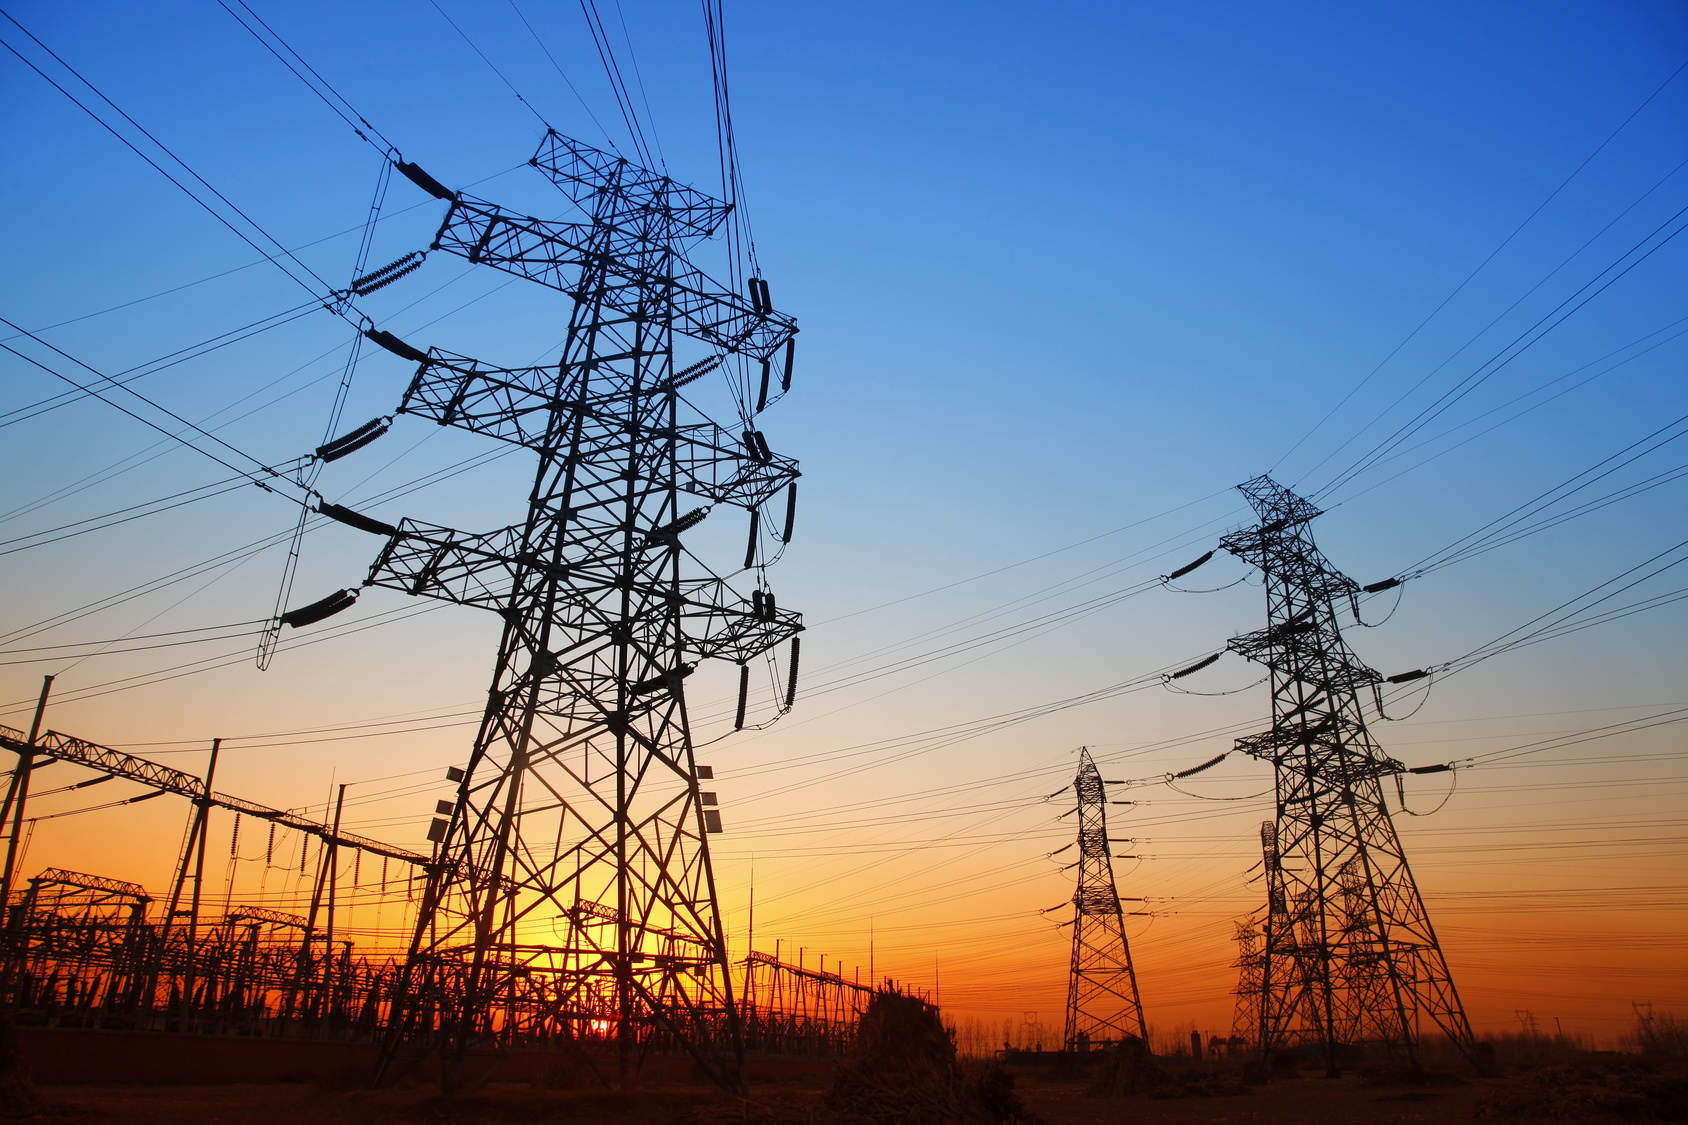 Analysis of the electromagnetic interference between transmission line systems and buried pipelines